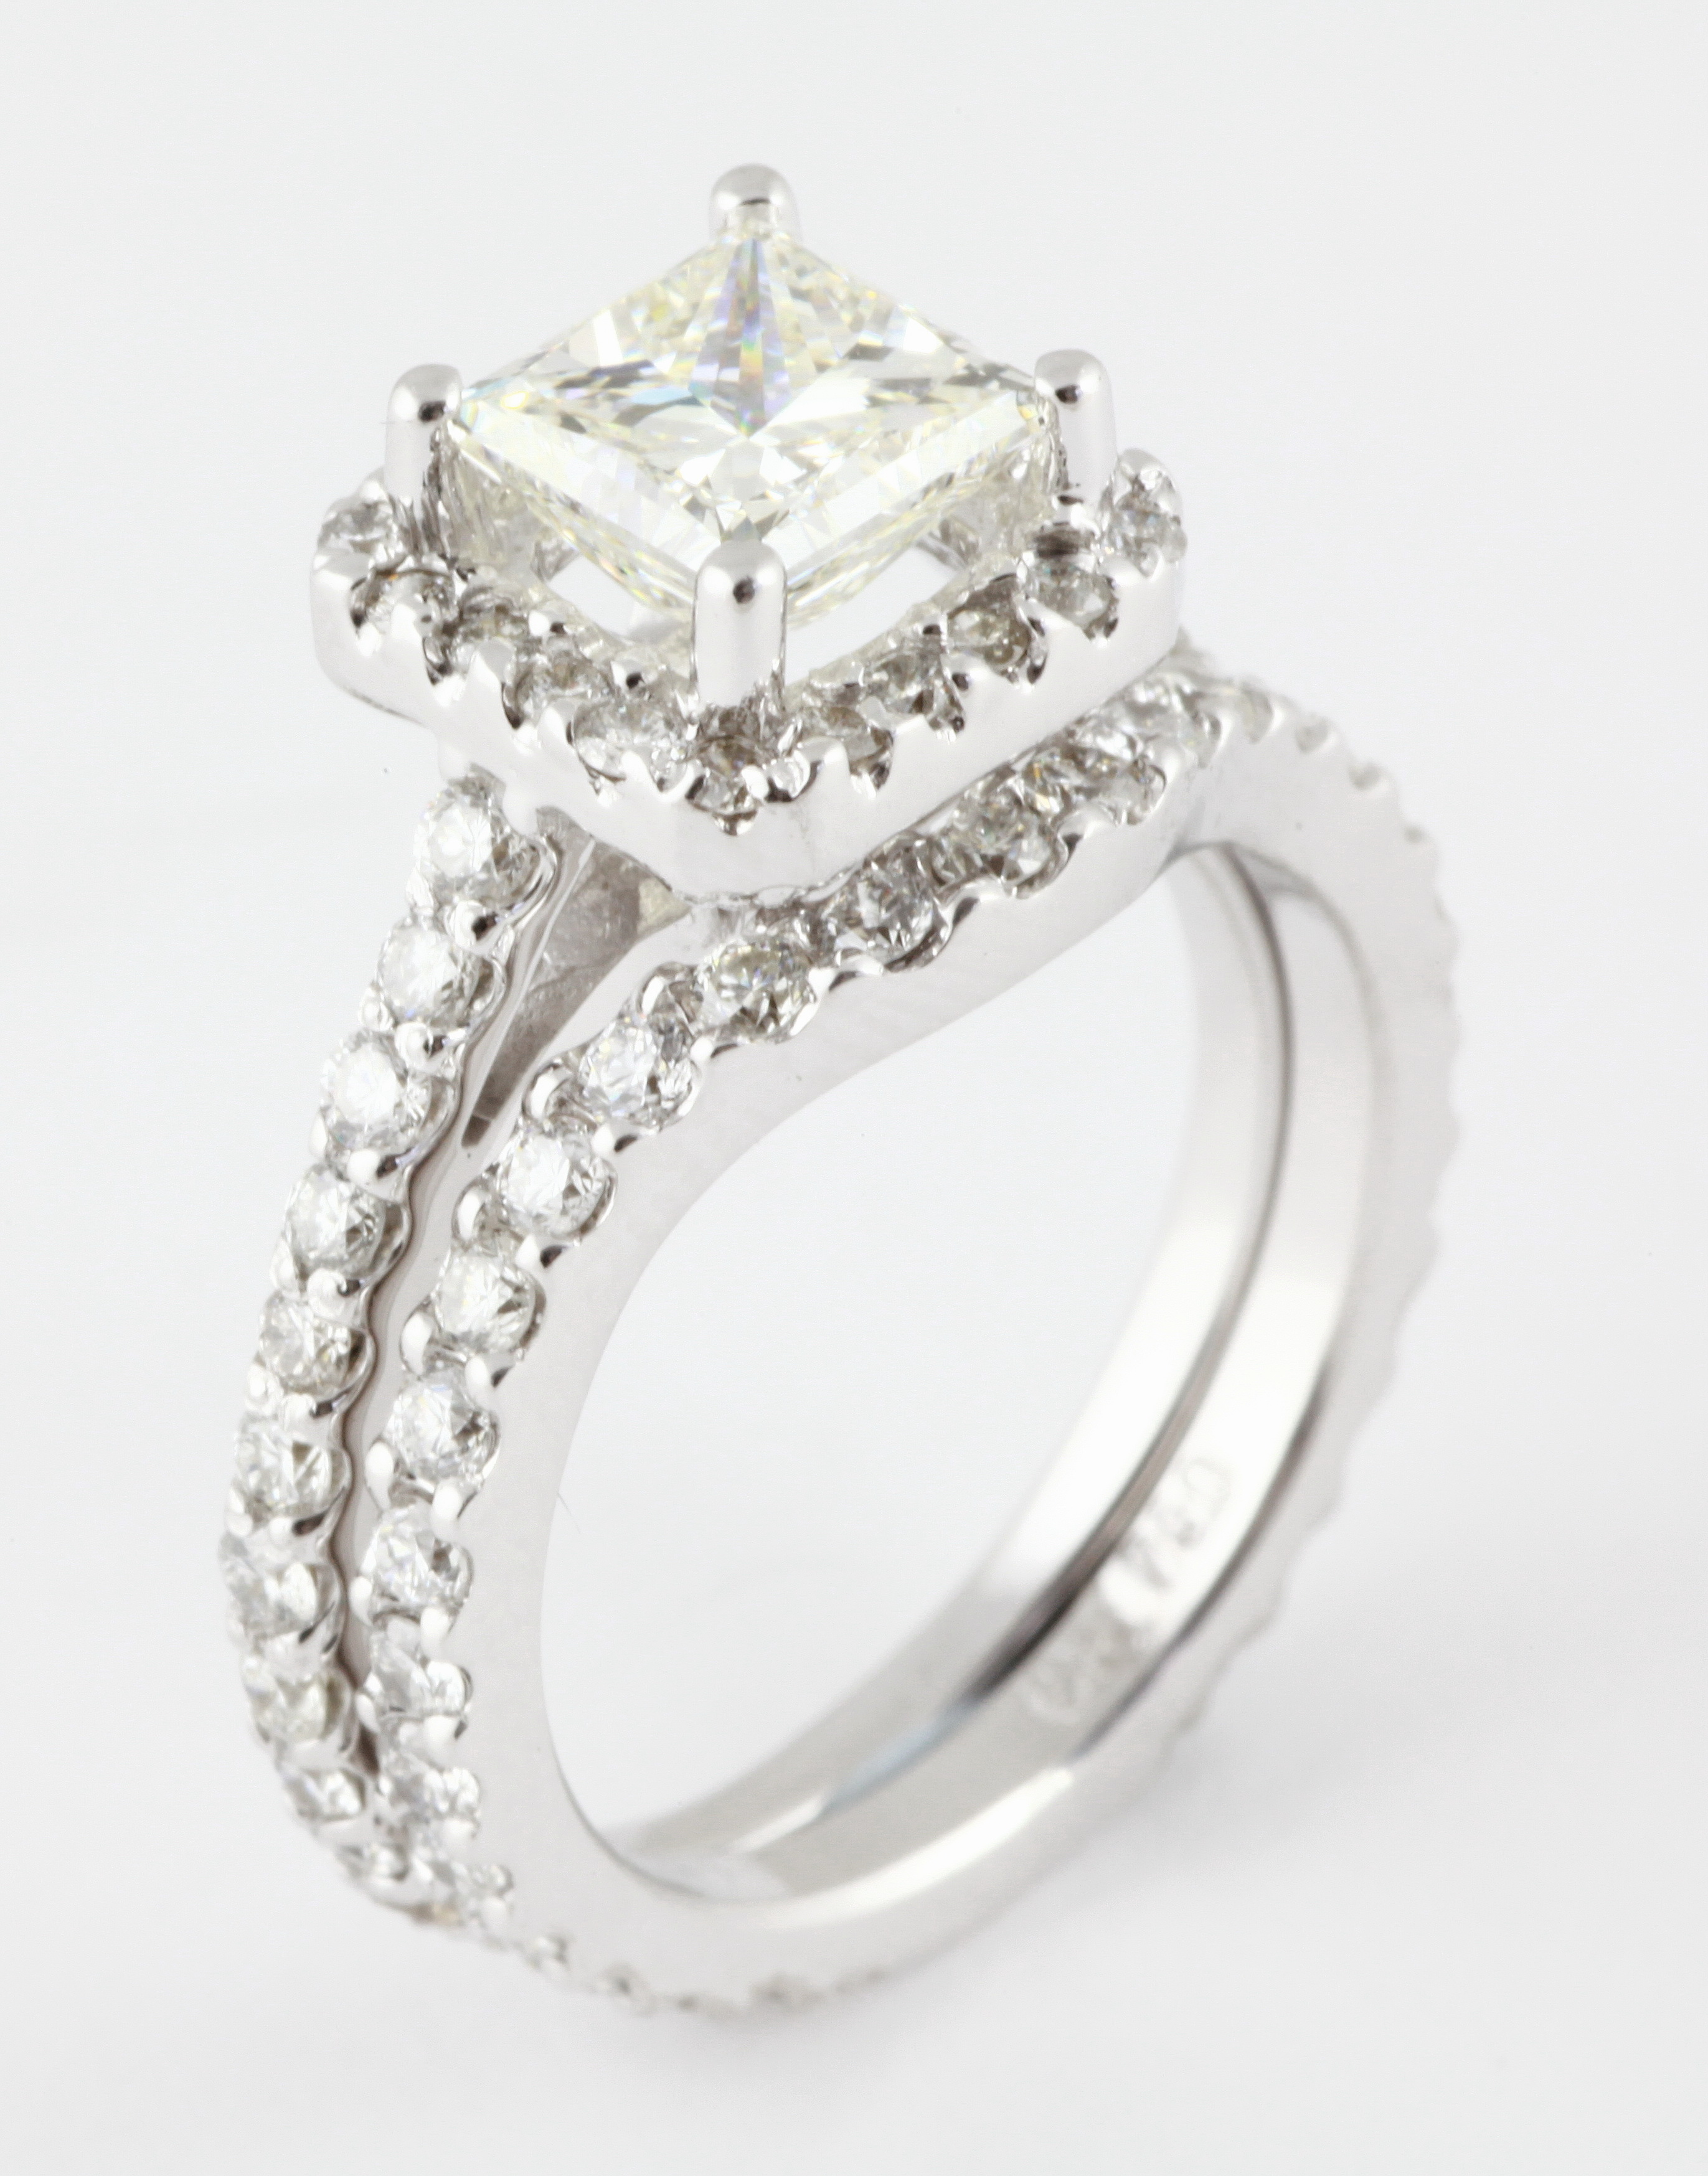 ... -princess-cut-engagement-ring-with-matching-fitted-wedding-band.jpg